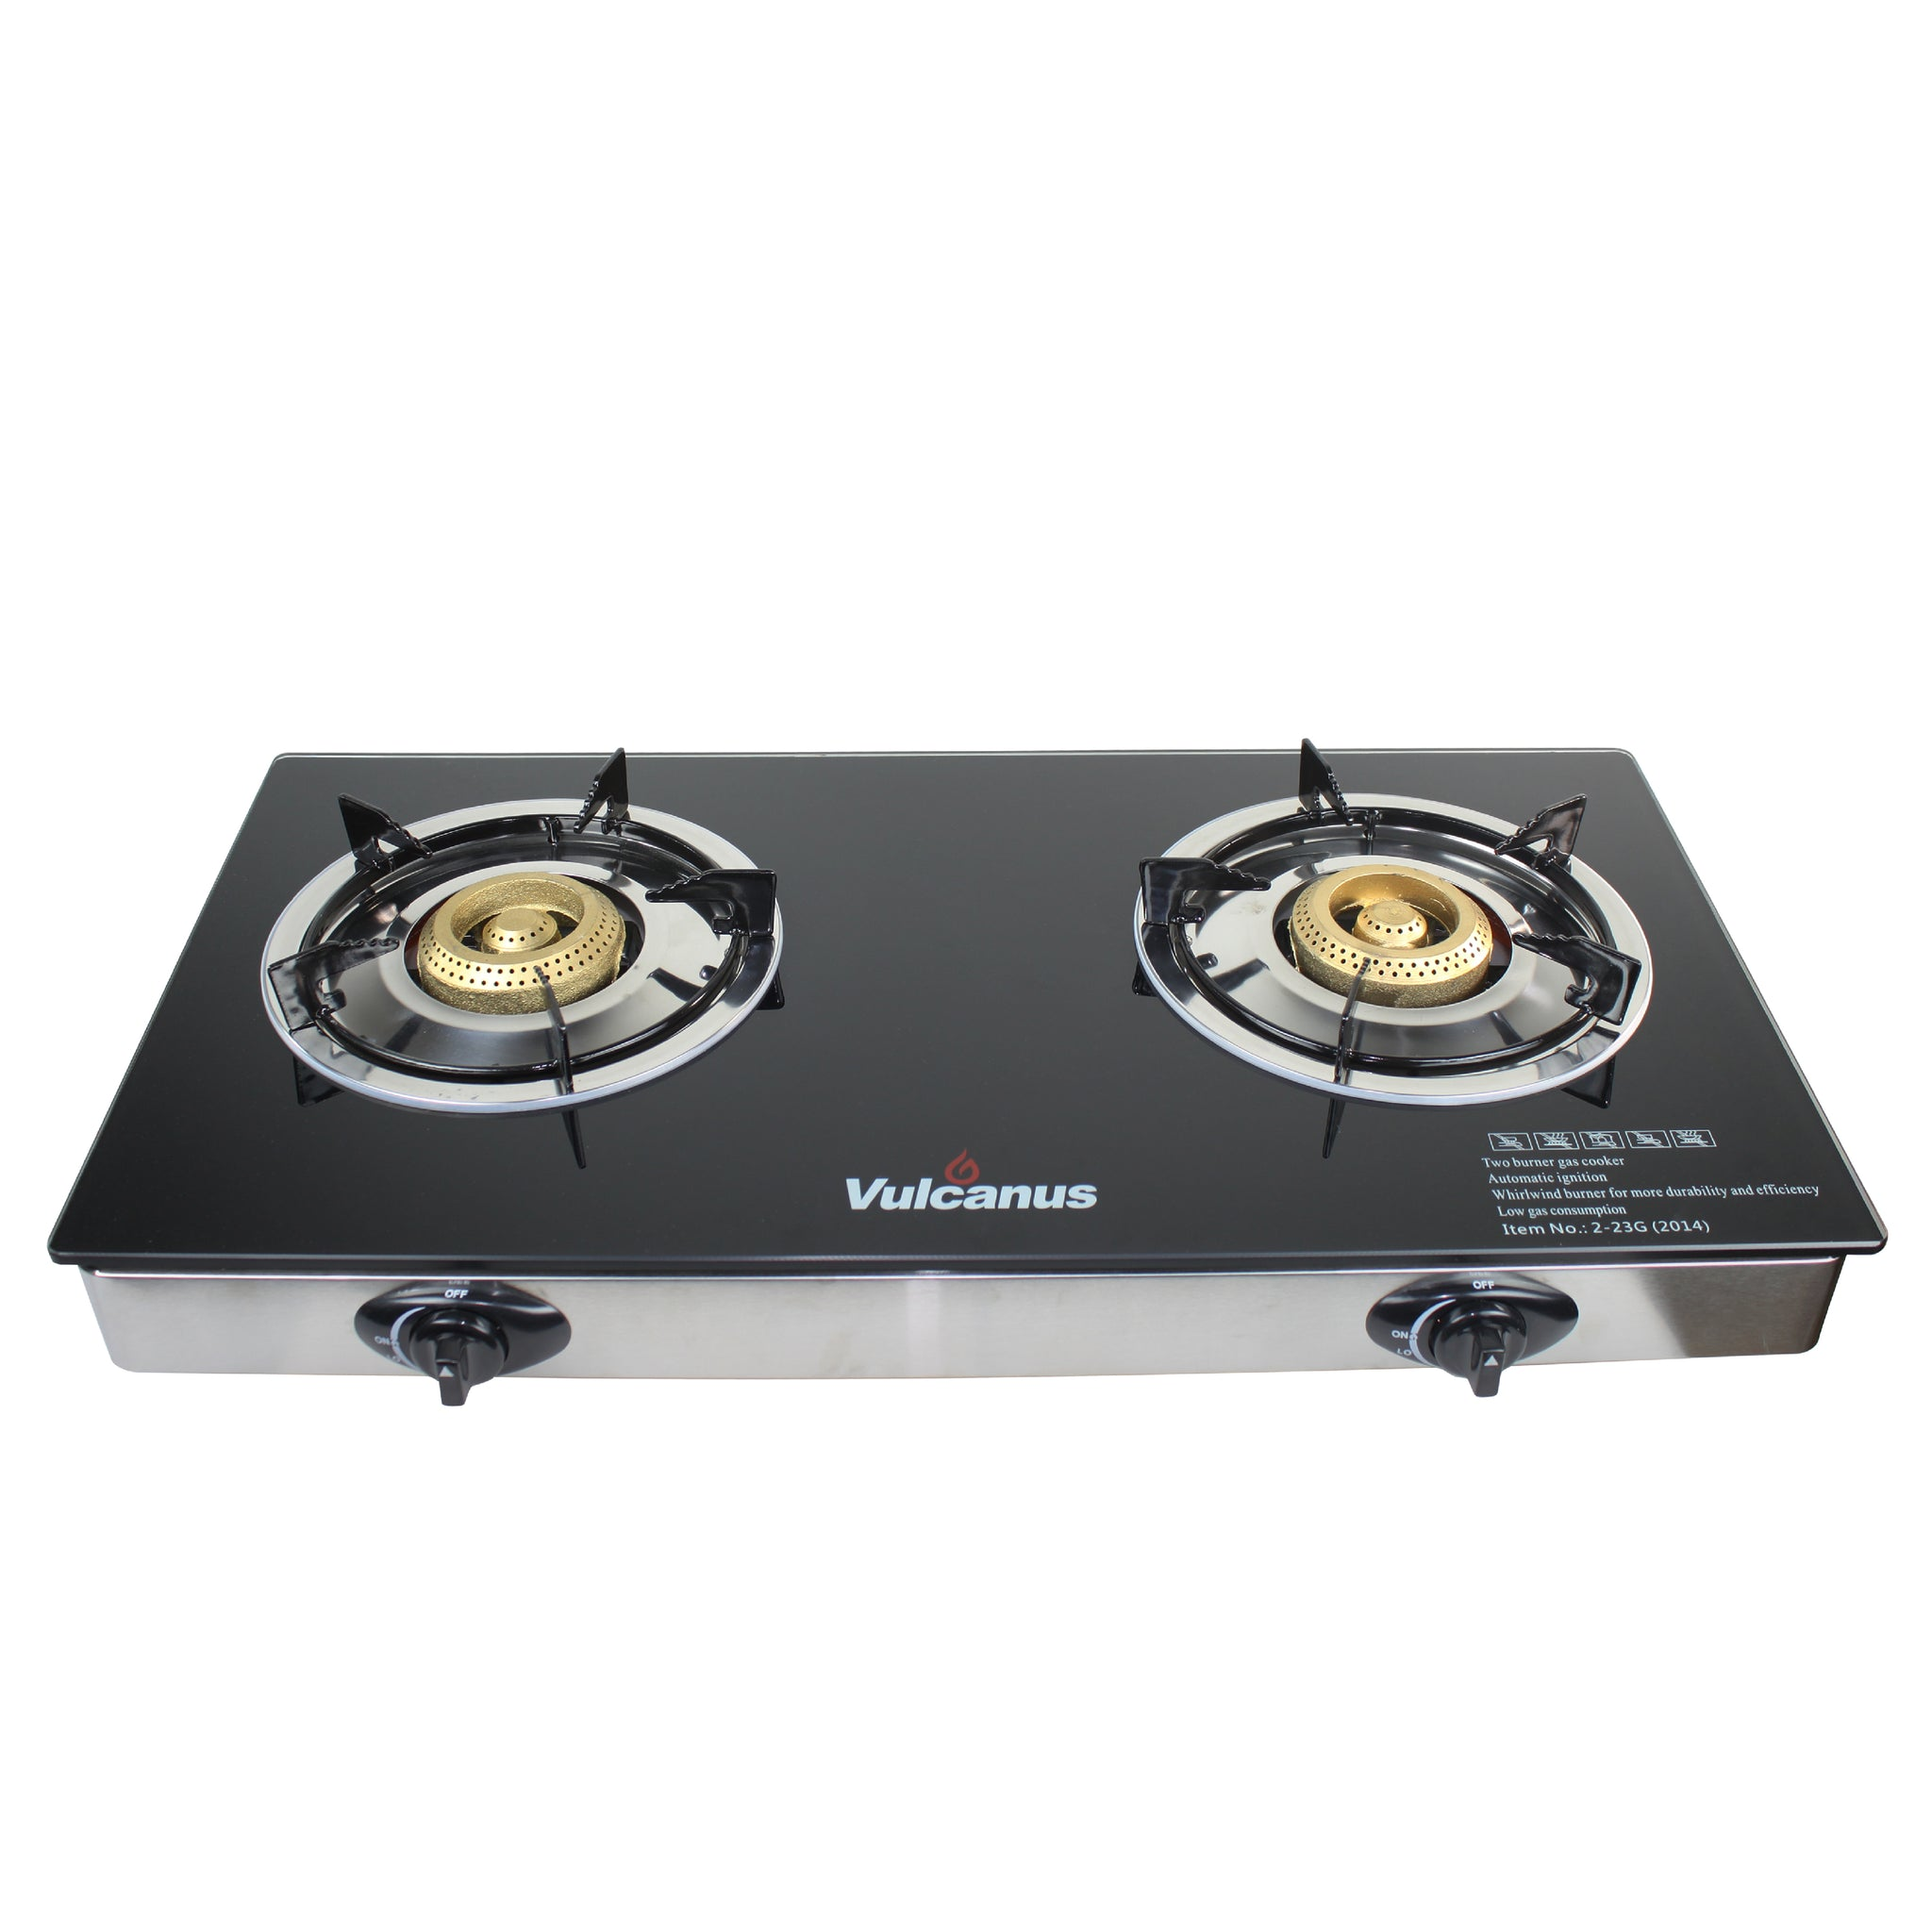 Vulcanus 2-23G Double cast iron glass burner, Free shipping (Excluding HI, AK)